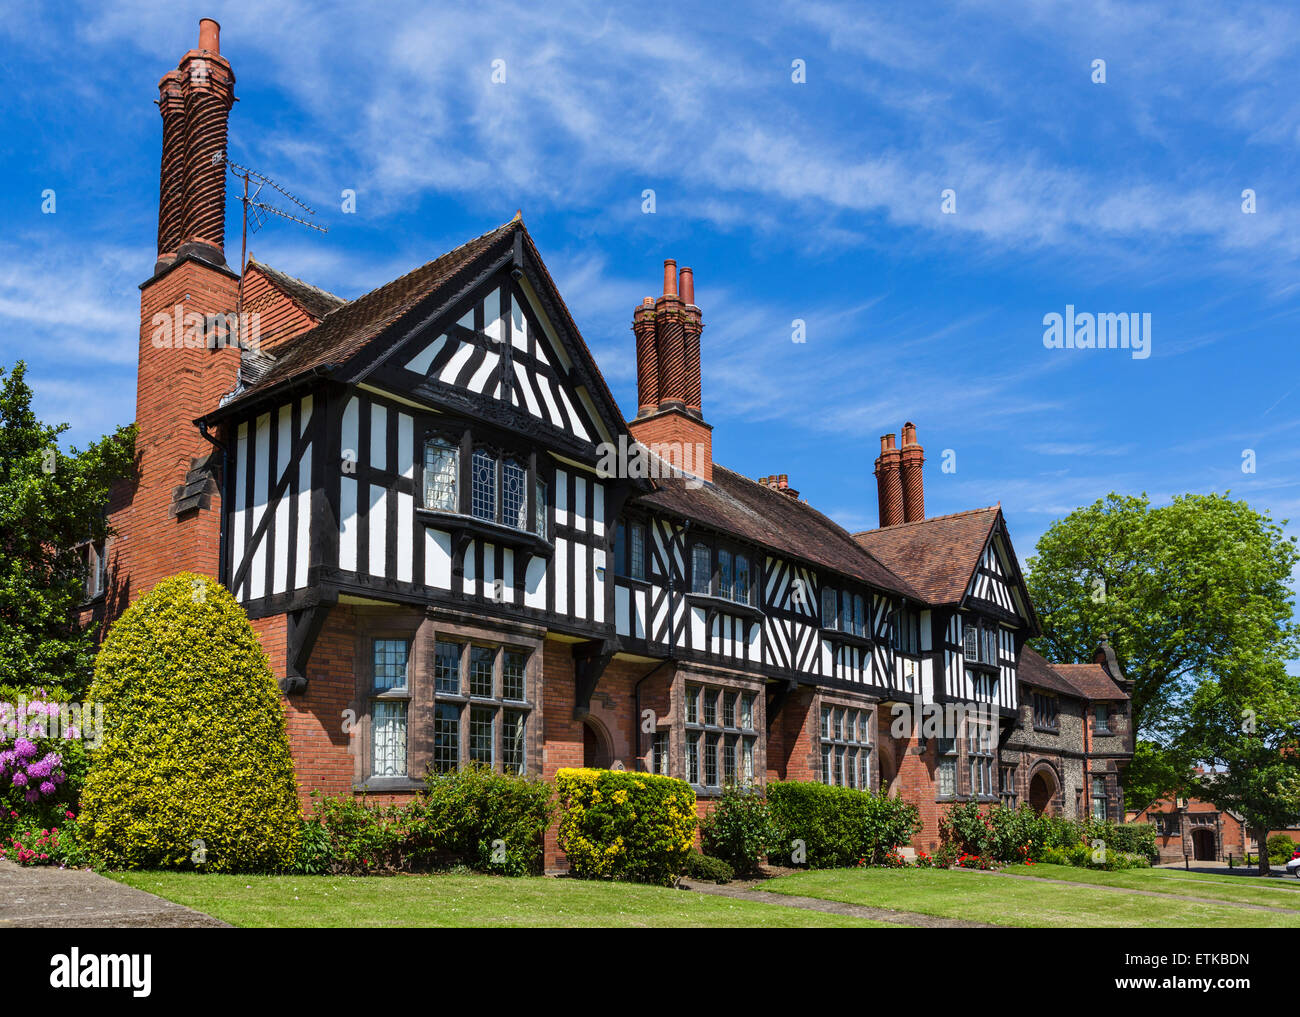 the analysis of the port sunlight Port sunlight is a true delight, and an absolute must-do activity when you visit  wirral built at the end of the 19th century, this garden village was originally built  as.